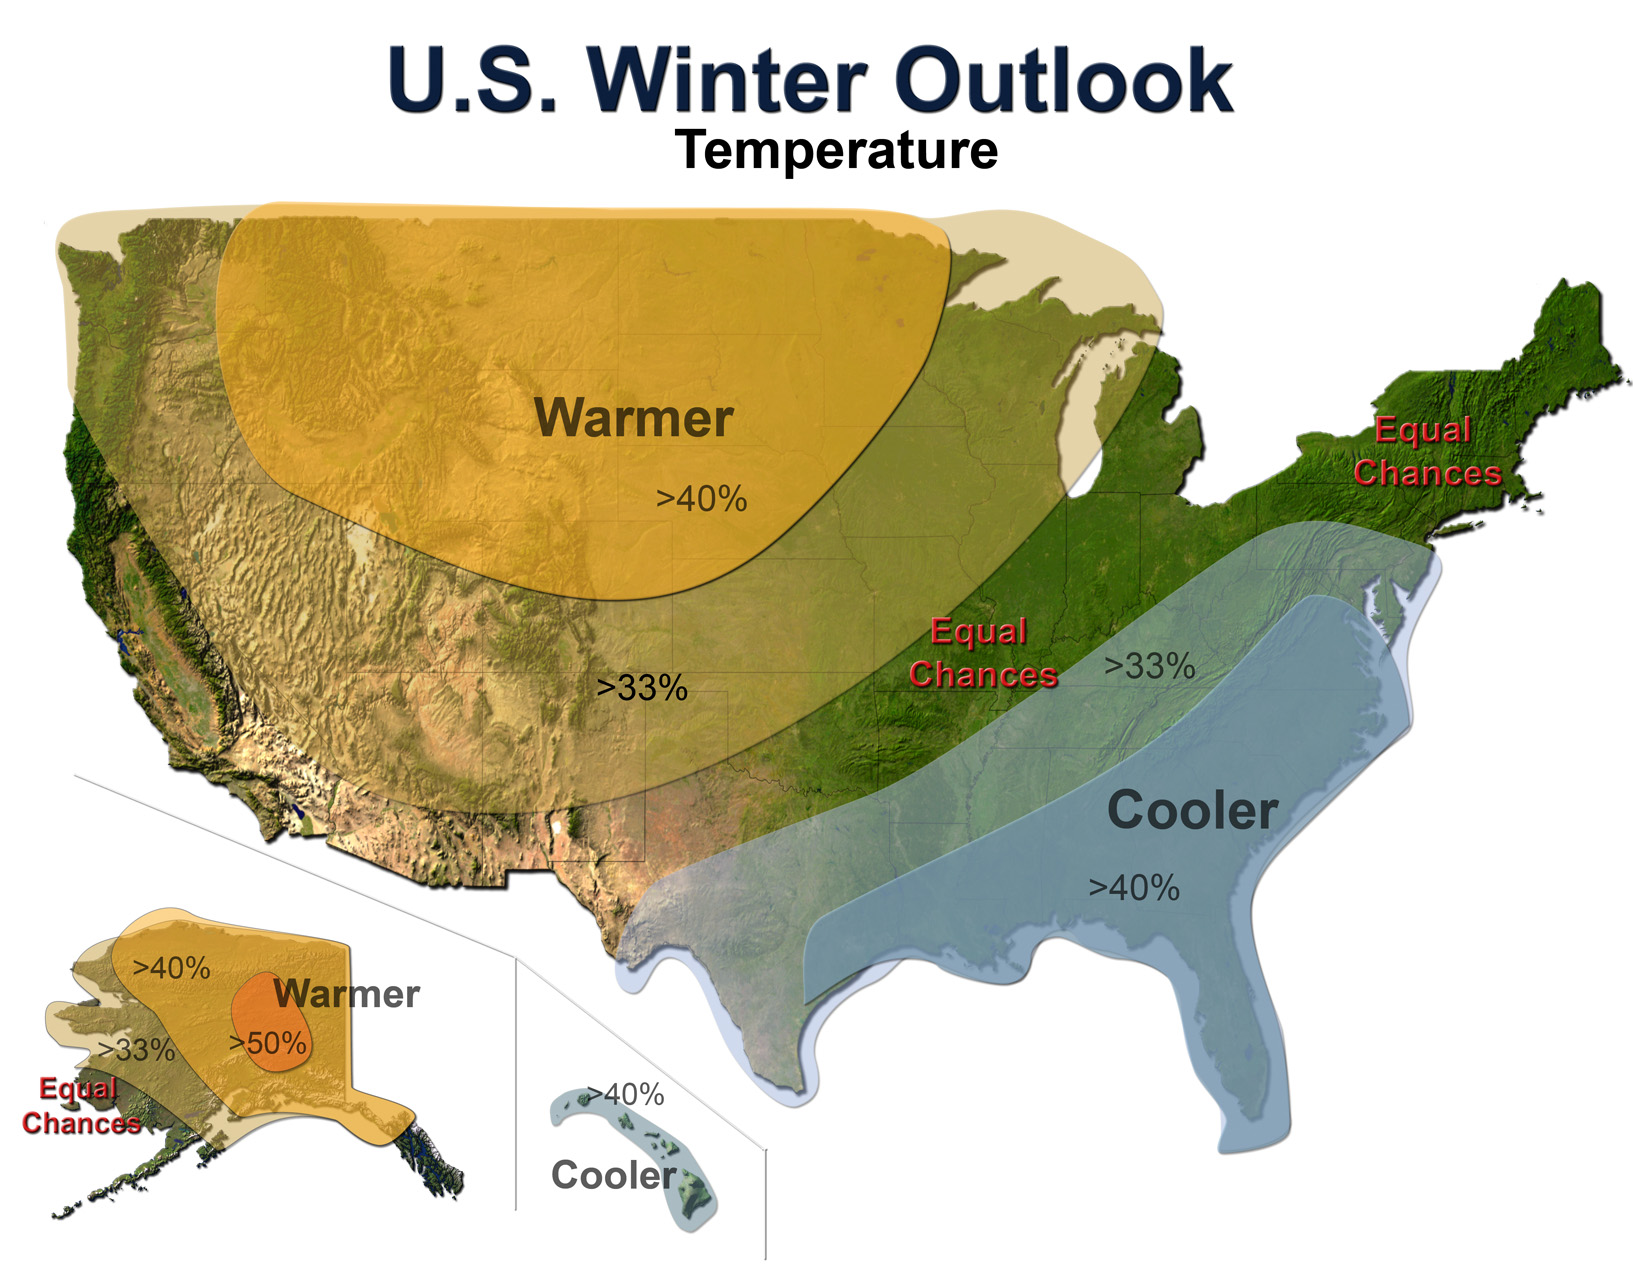 FileUS Temp Outlook Winter NOAAjpg Wikimedia Commons - Weather map of the us with temps